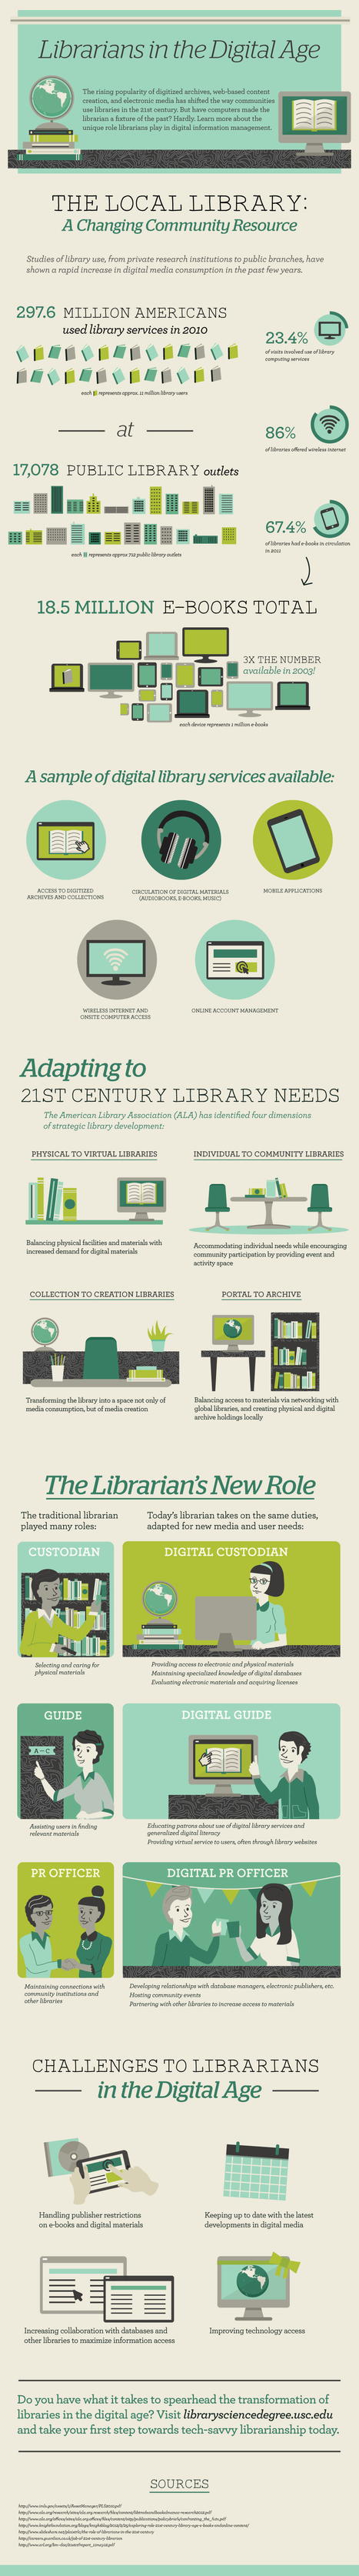 INFOGRAPHIC: Librarians Take On New Roles In Digital Age | Why ? Library | Scoop.it